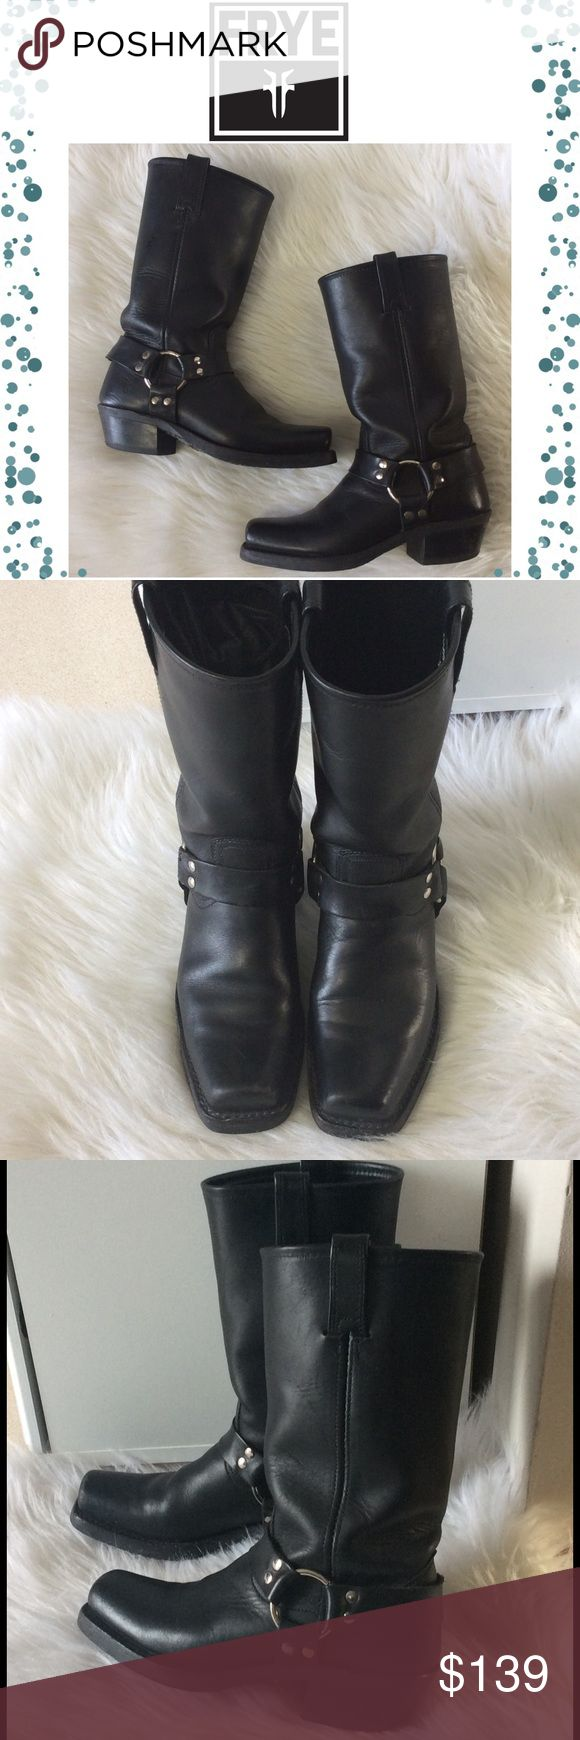 Frye Riding Boots Black Frye riding boots in very good preowned condition. They show some wear on soles, heels and sides as shown in pictures. Reasonable offers are welcome. Box is not included Frye Shoes Heeled Boots